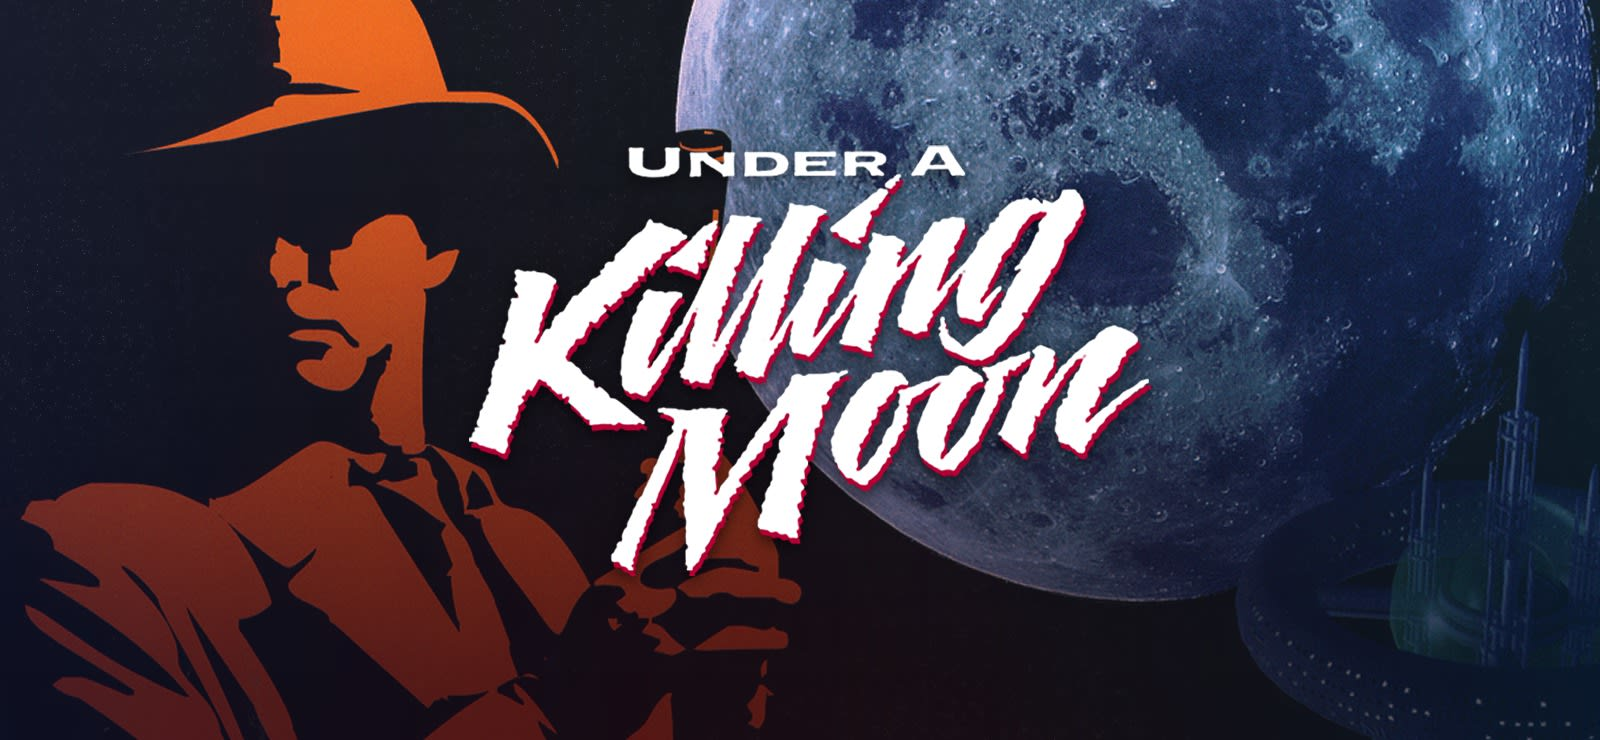 Tex Murphy: Under A Killing Moon varies-with-device